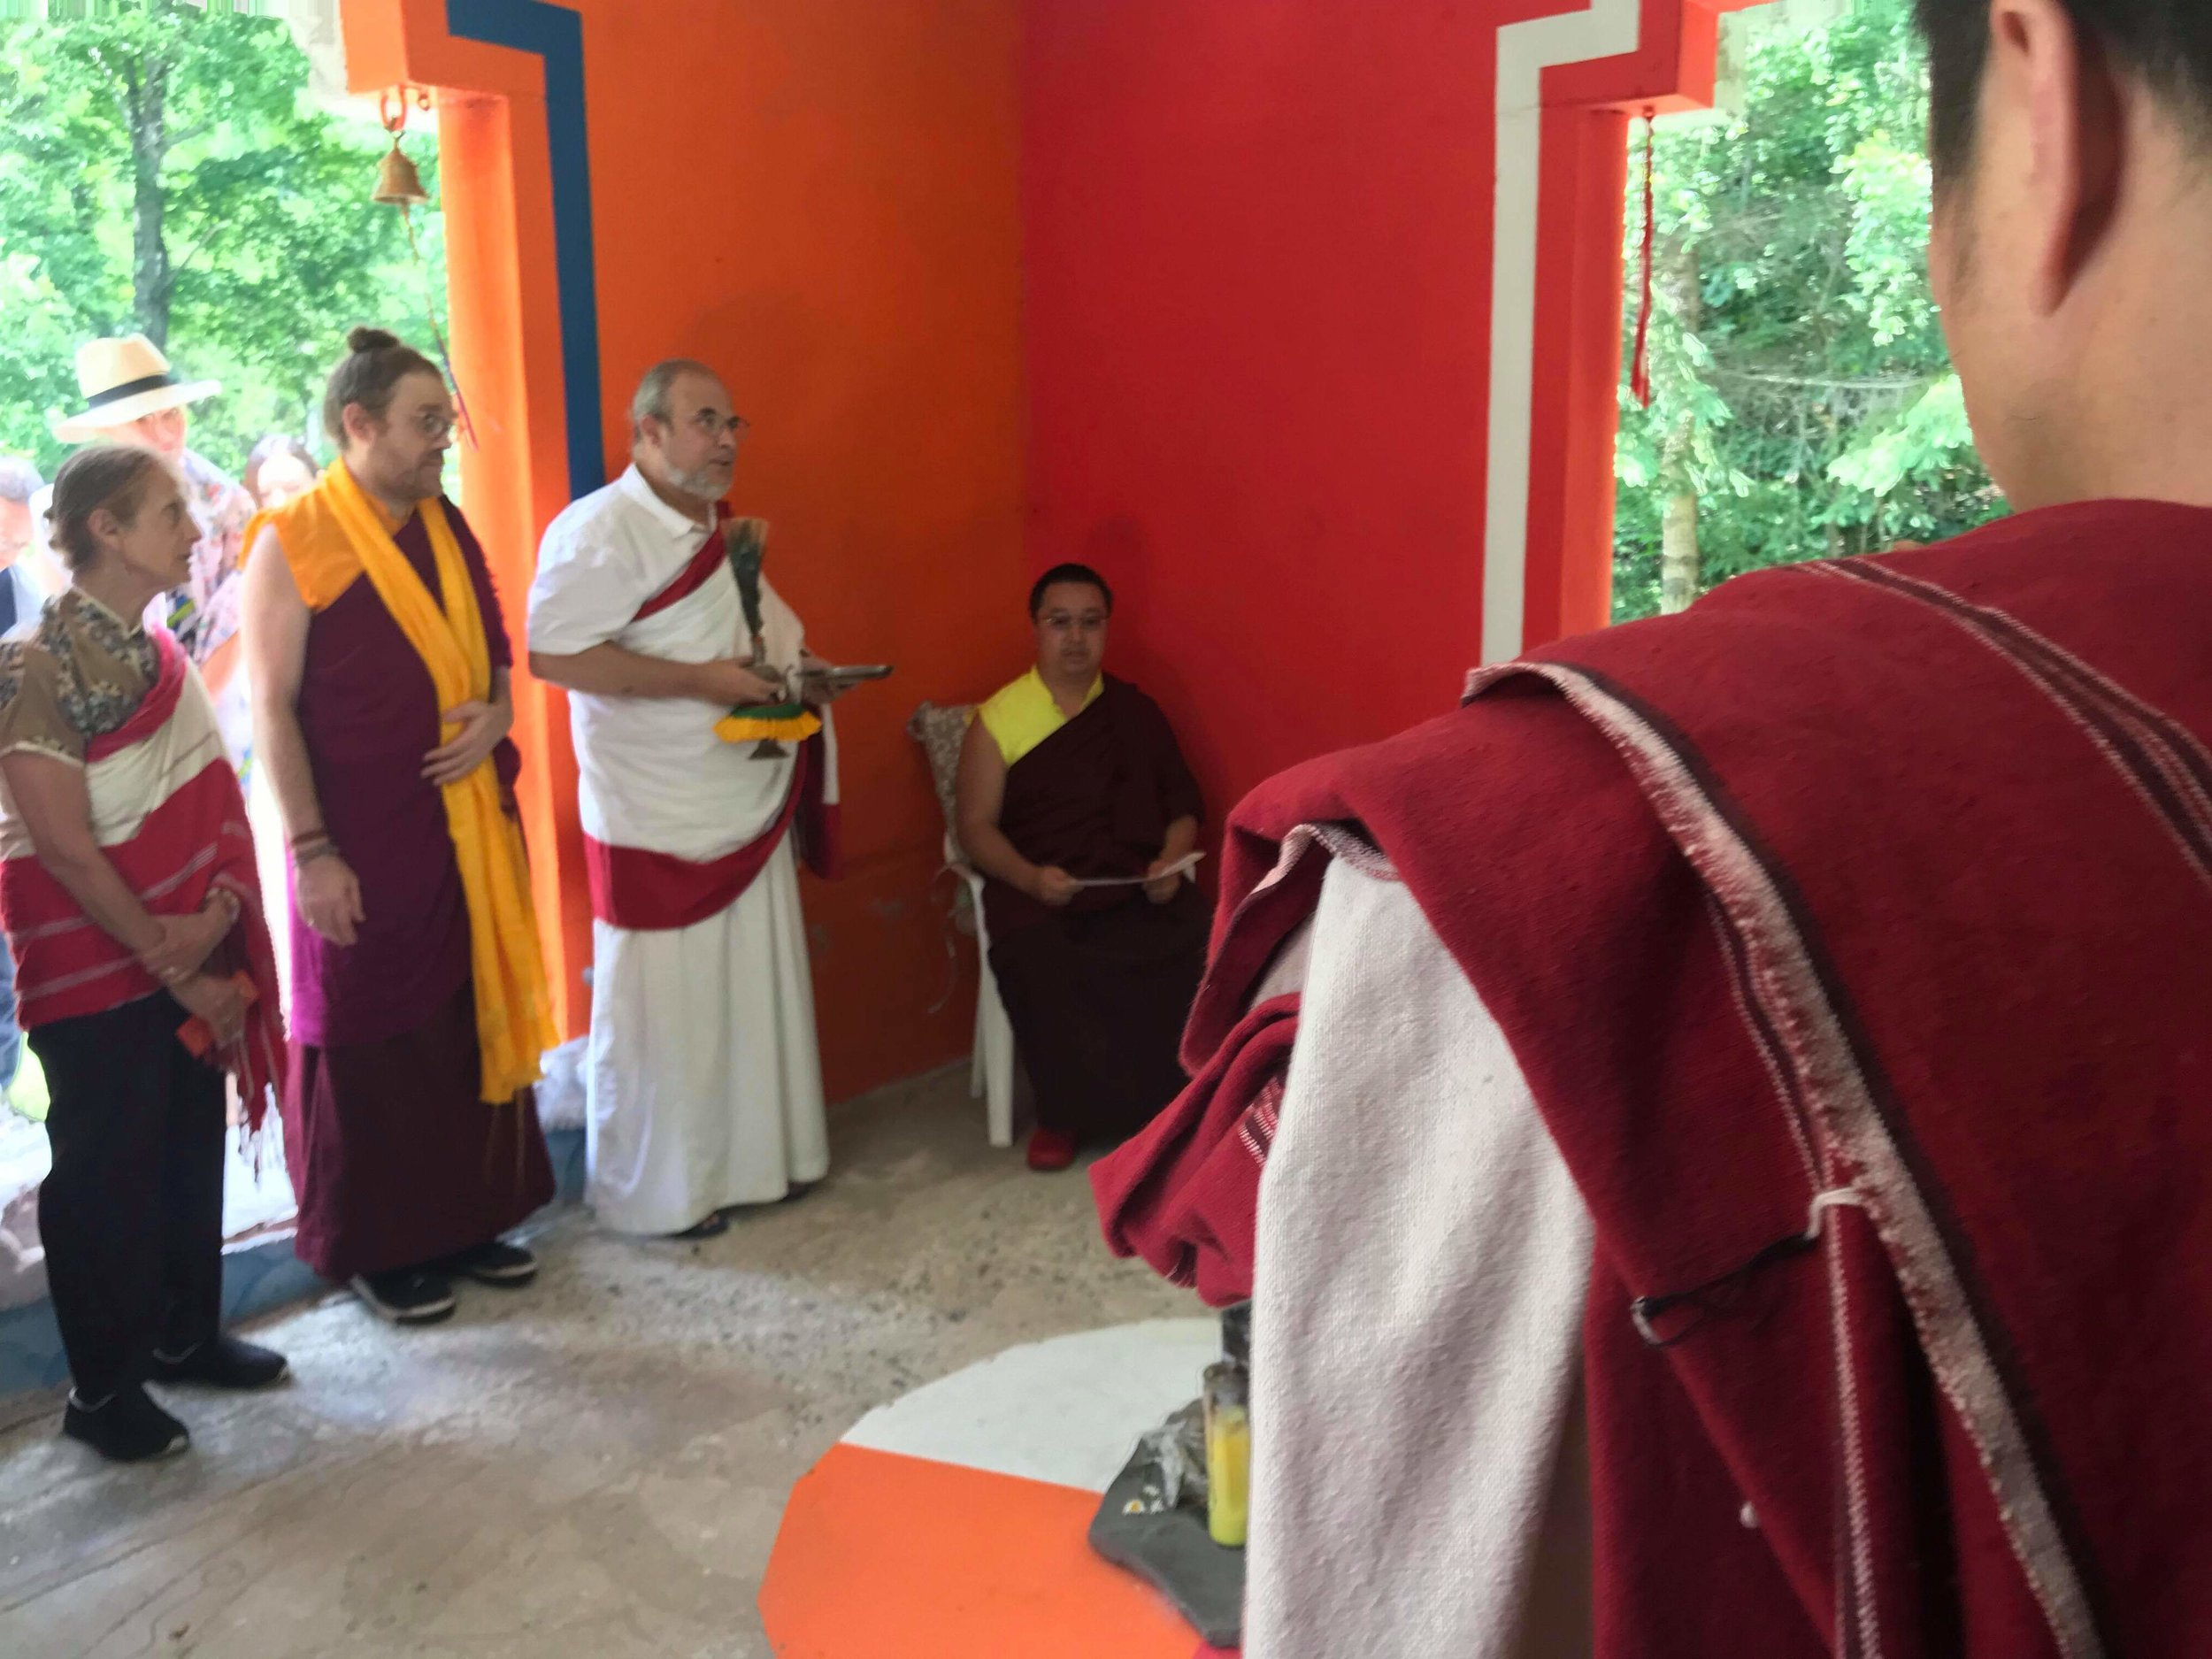 HH Yangsi Rinpoche blessing the Stupa